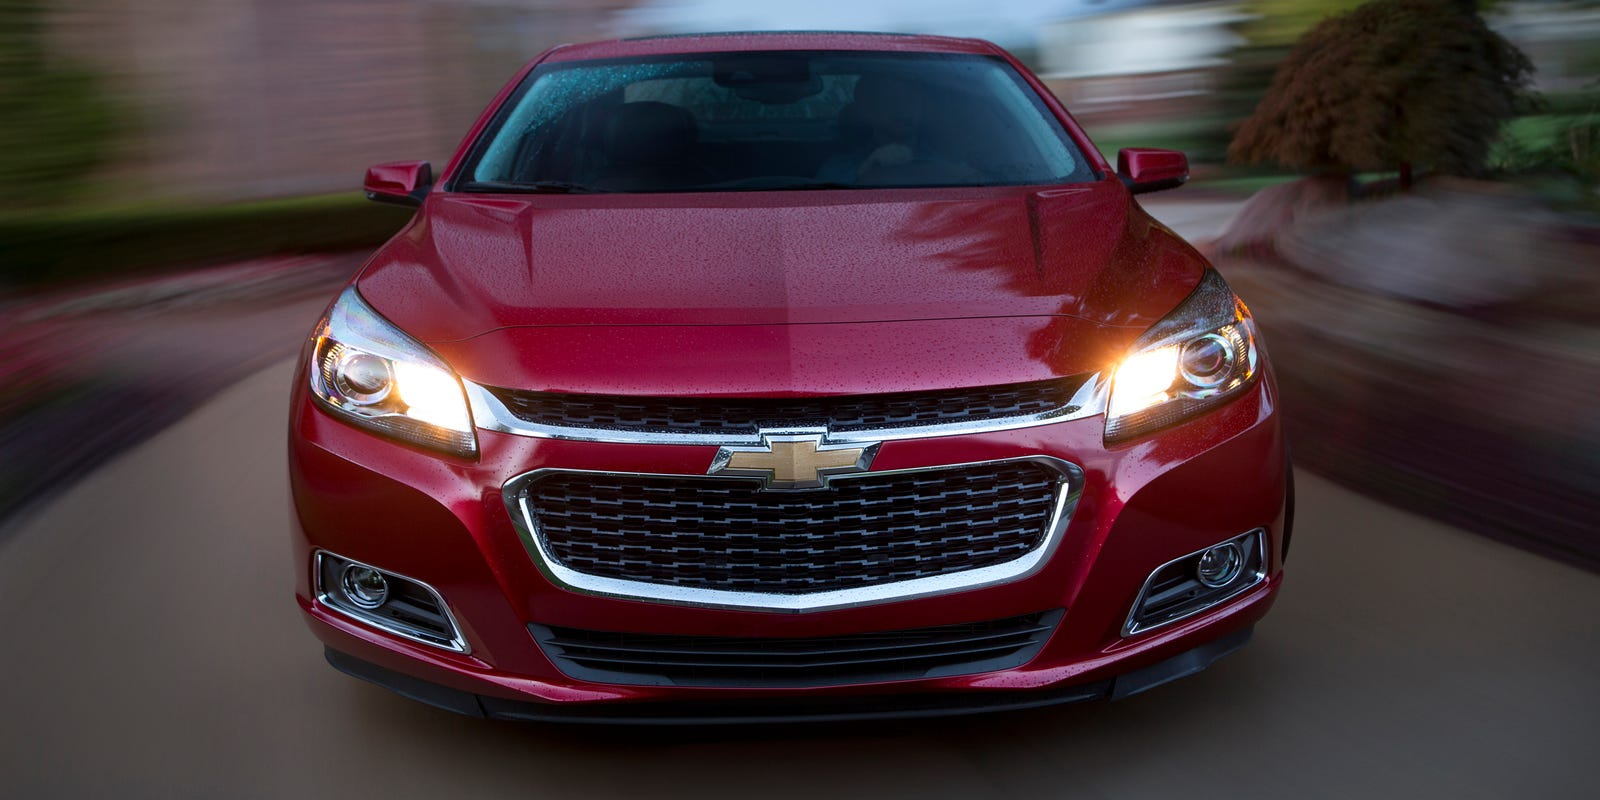 2014 Malibu recalled for foggy windows